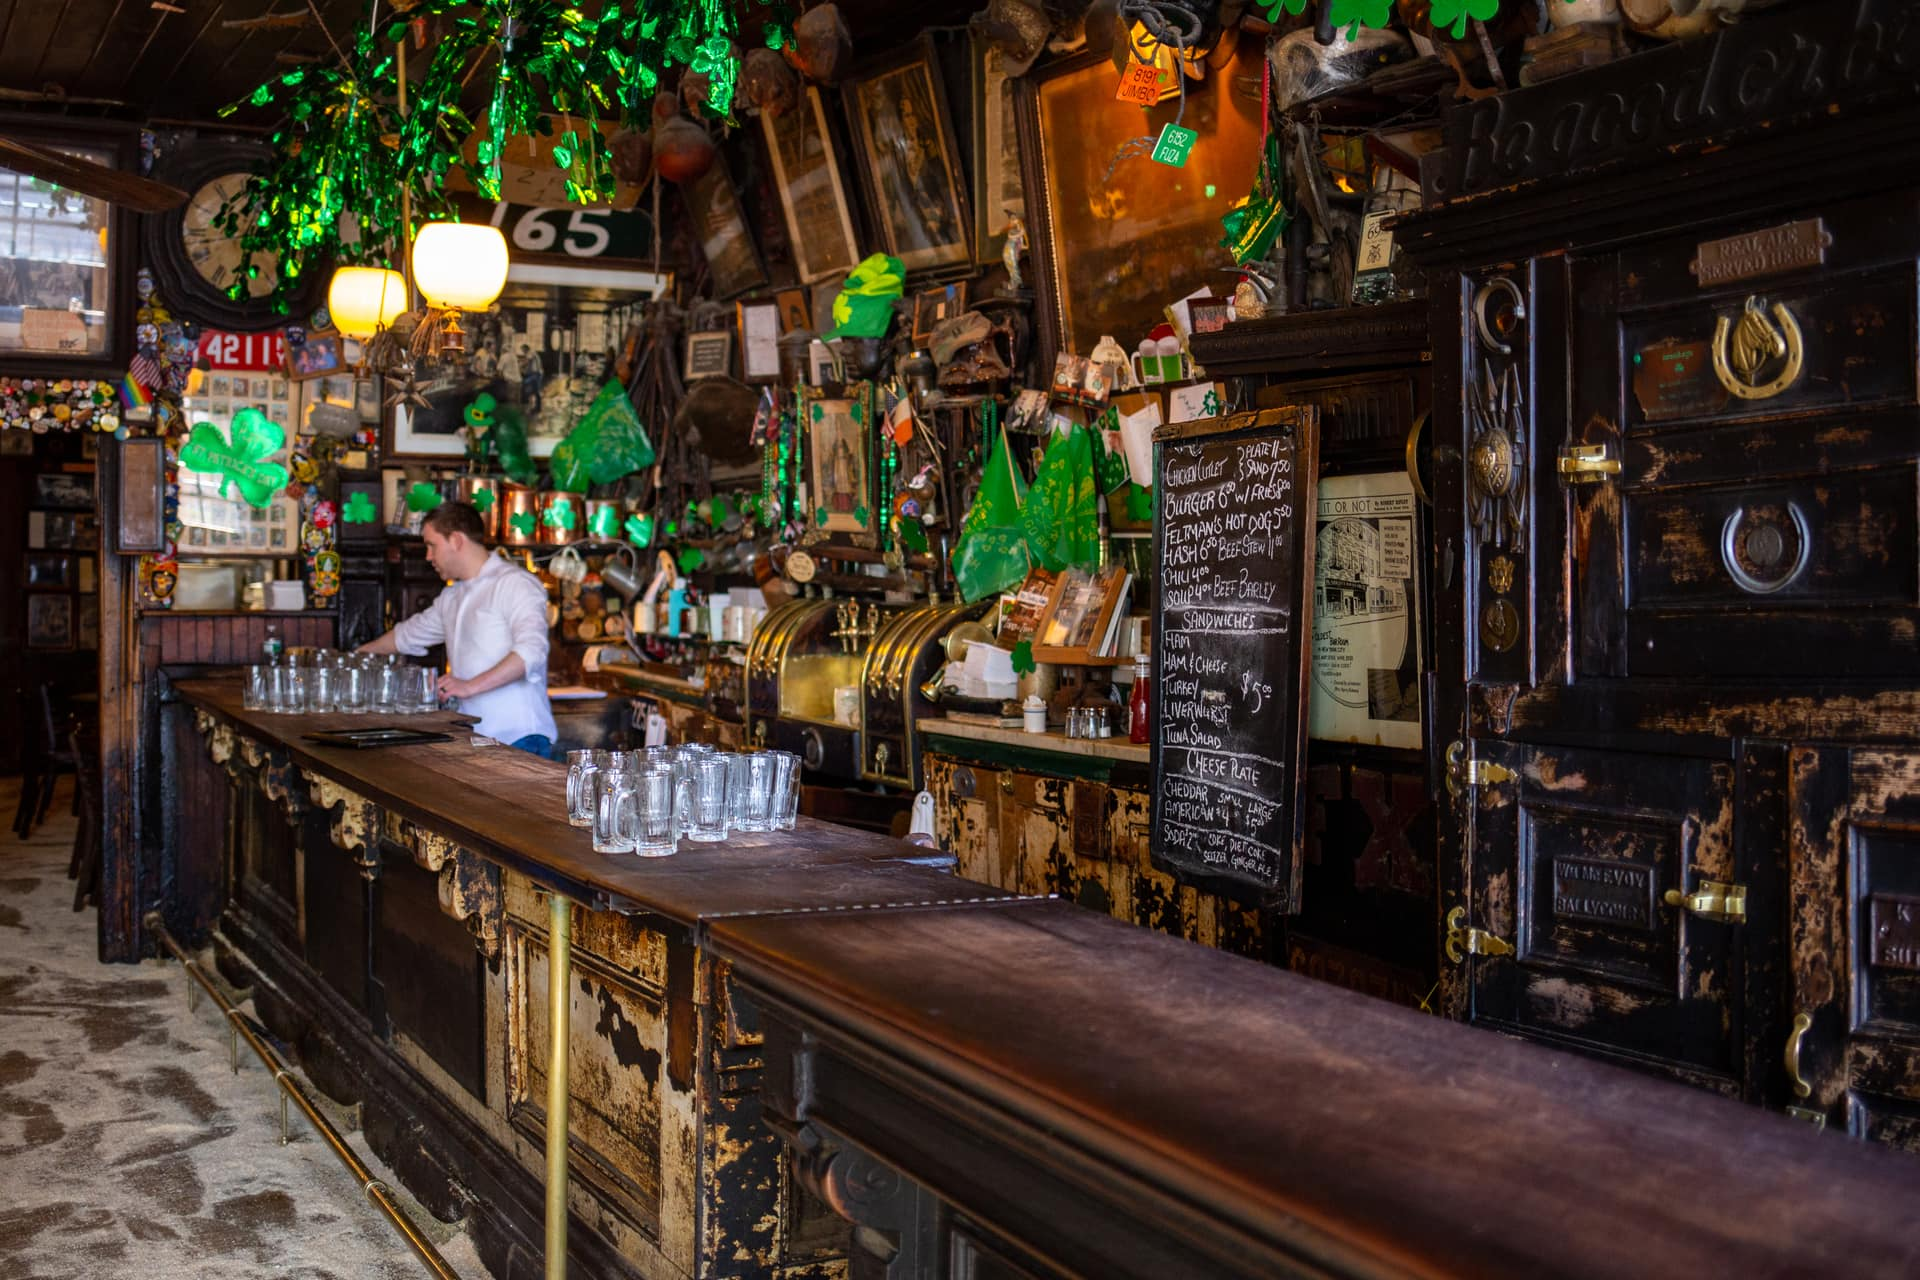 A bartender refills glasses at McSorley's